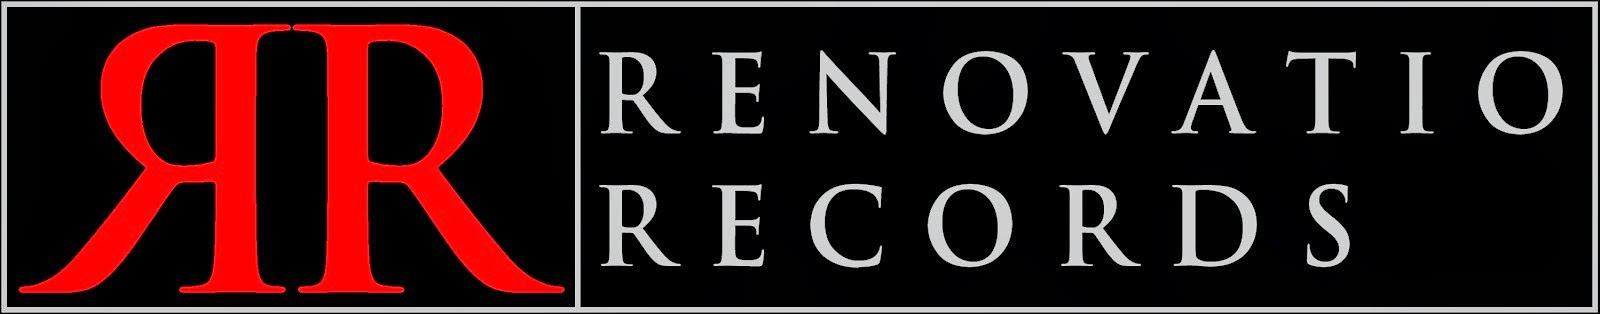 Renovatio Records